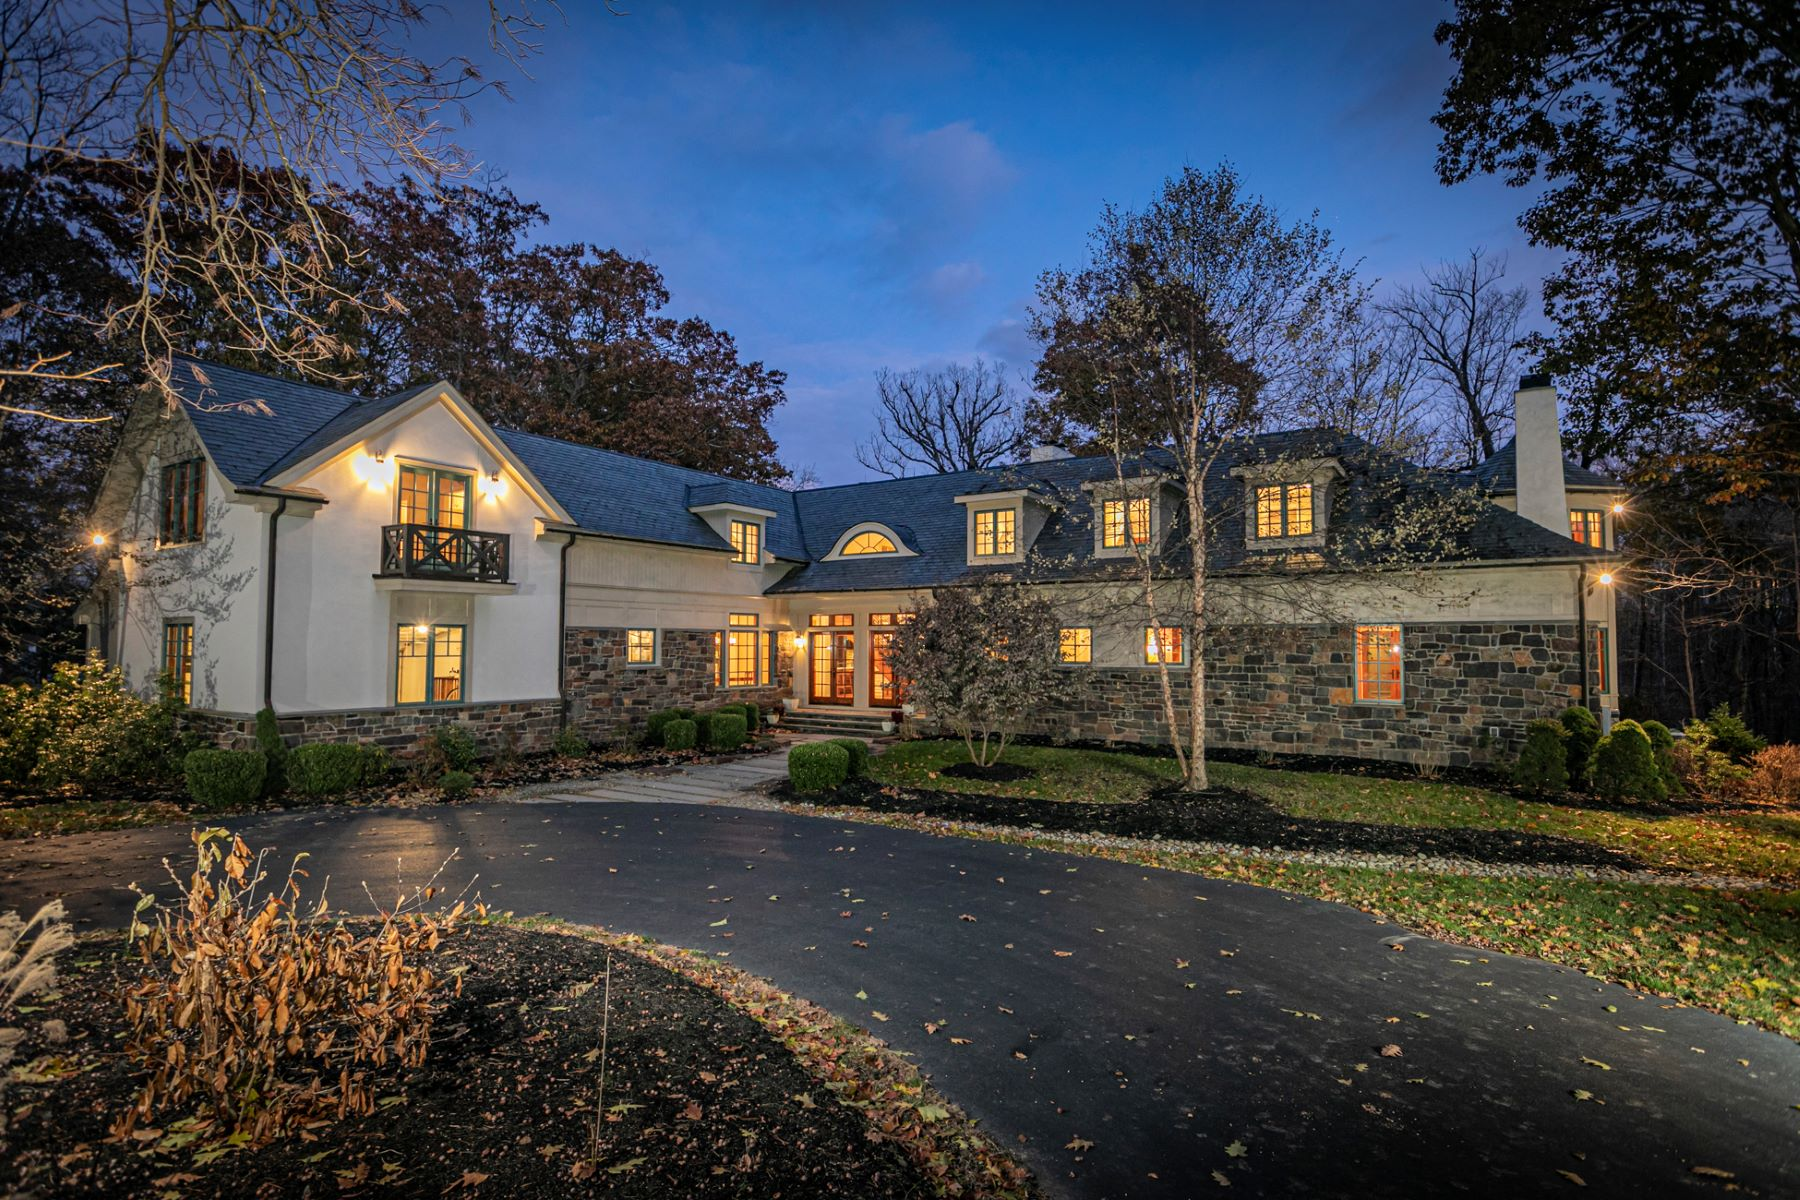 Single Family Homes for Sale at Luxury Home Perched Above Stoney Brook 37 Stoney Brook Lane, Princeton, New Jersey 08540 United States